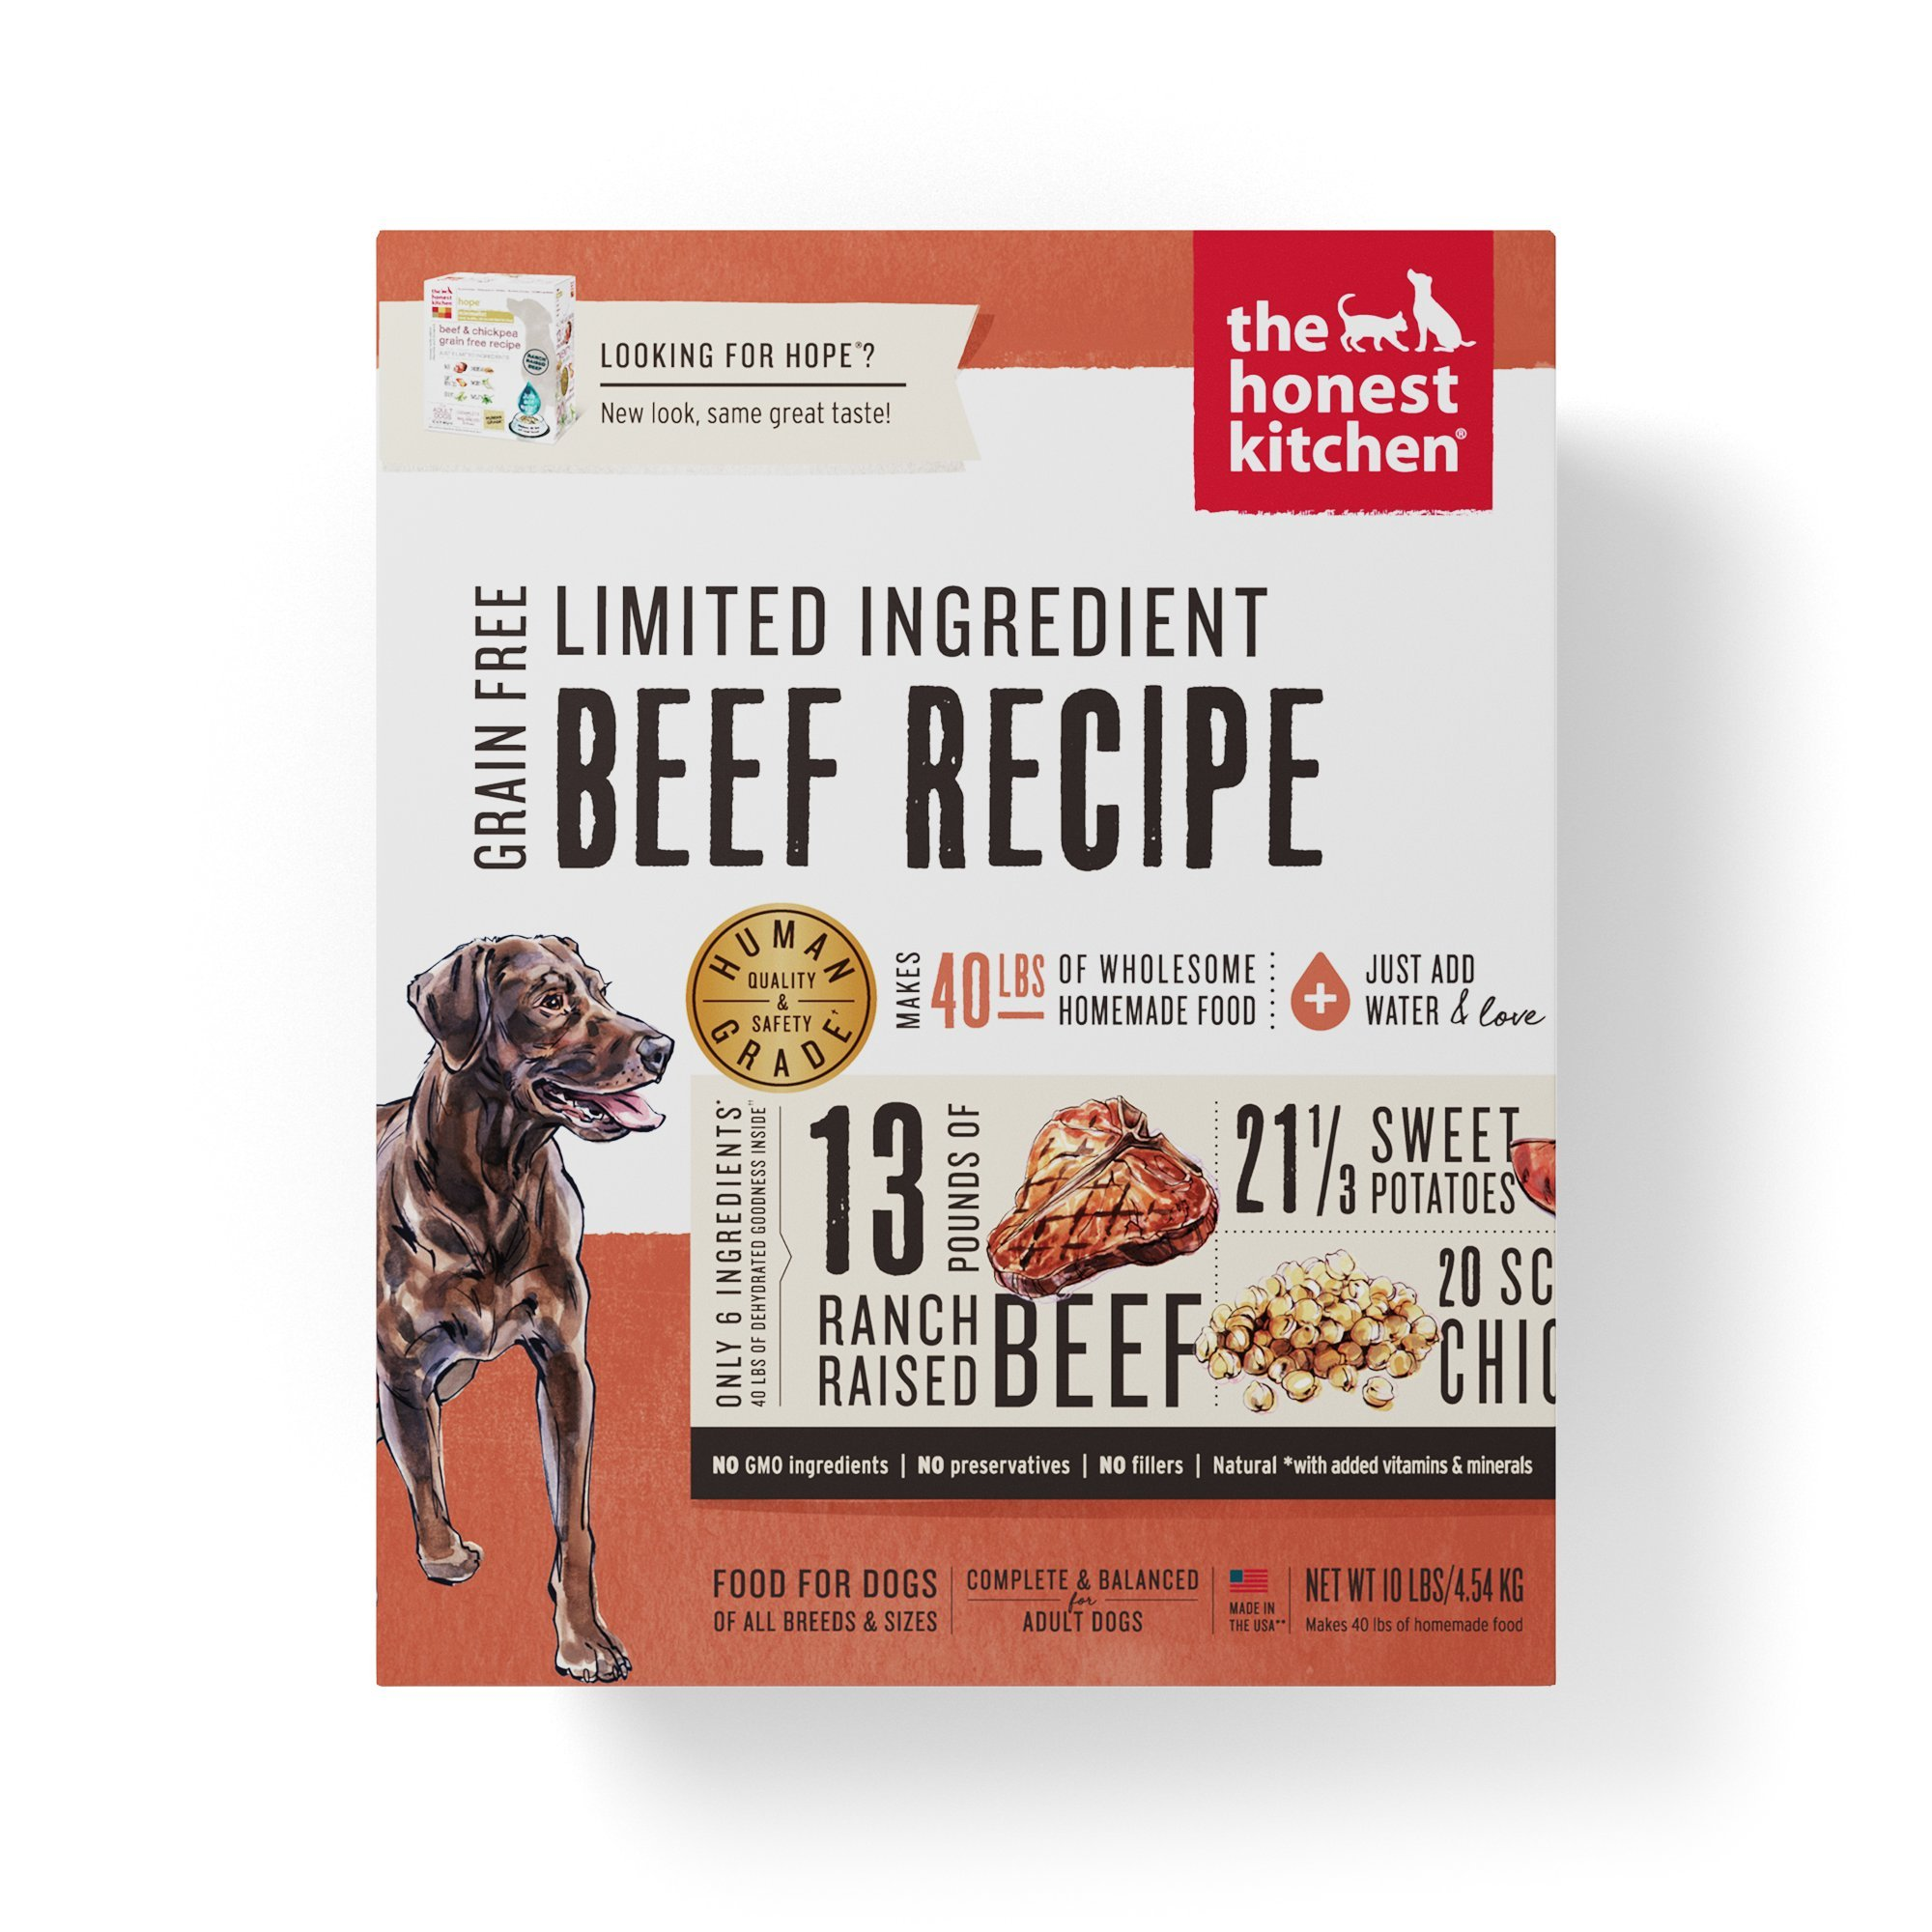 The Honest Kitchen Limited Ingredient Beef Dog Food Recipe, 10 lb box - Hope